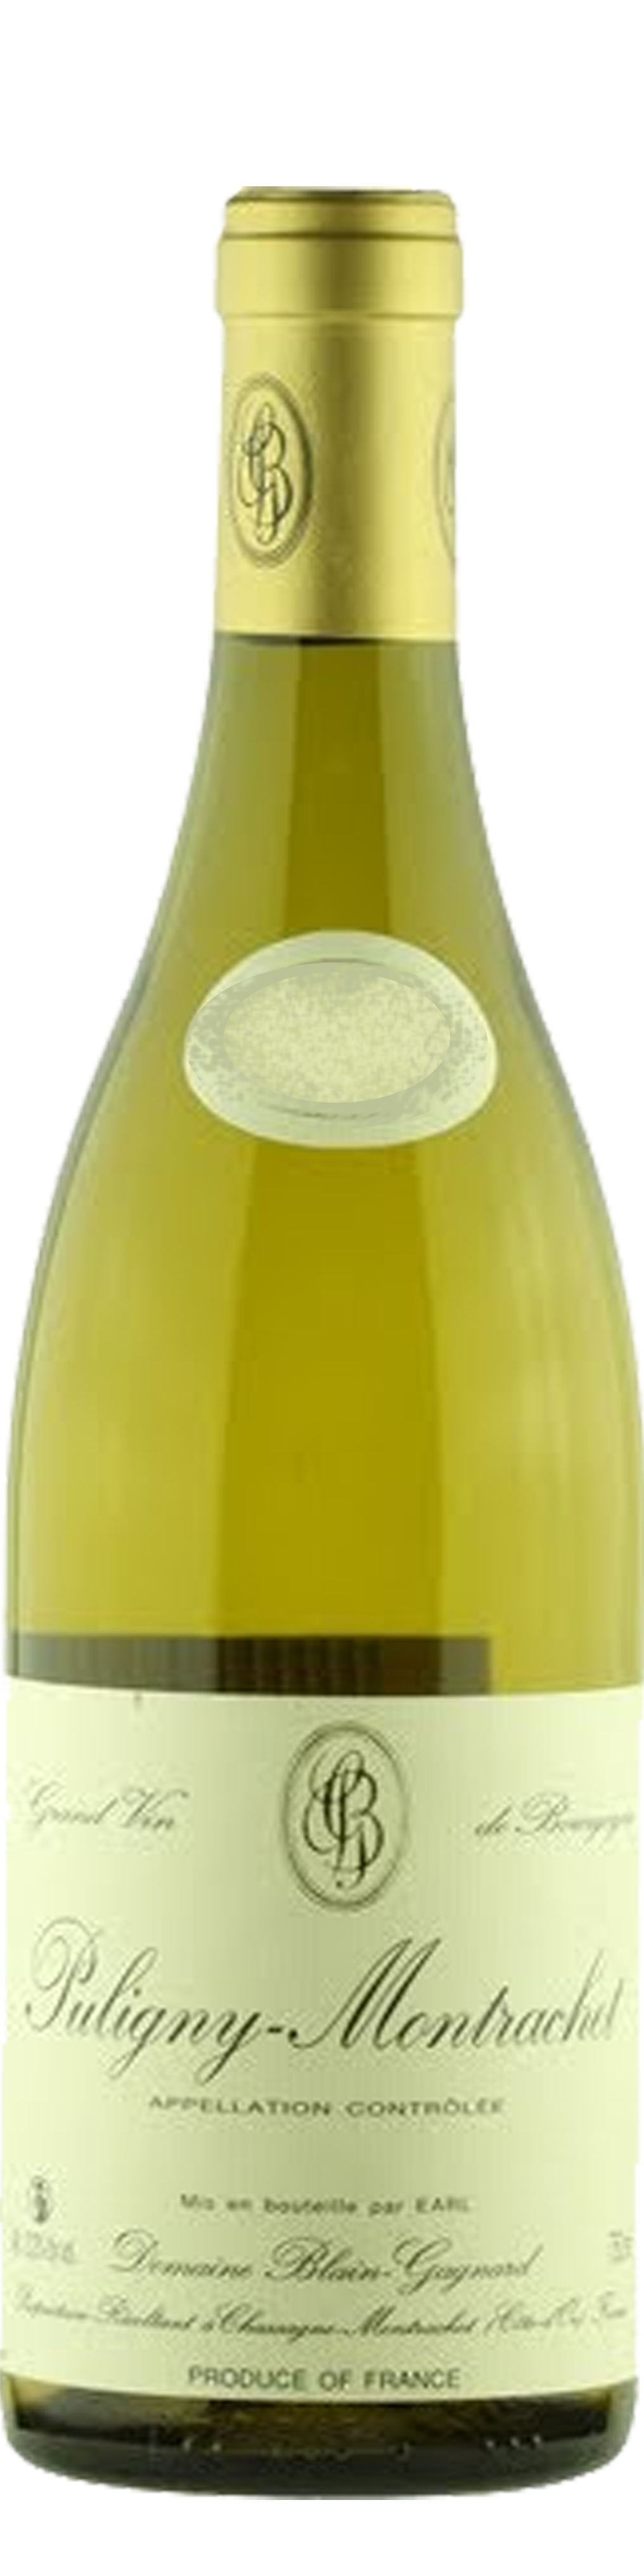 Image of product Puligny Montrachet